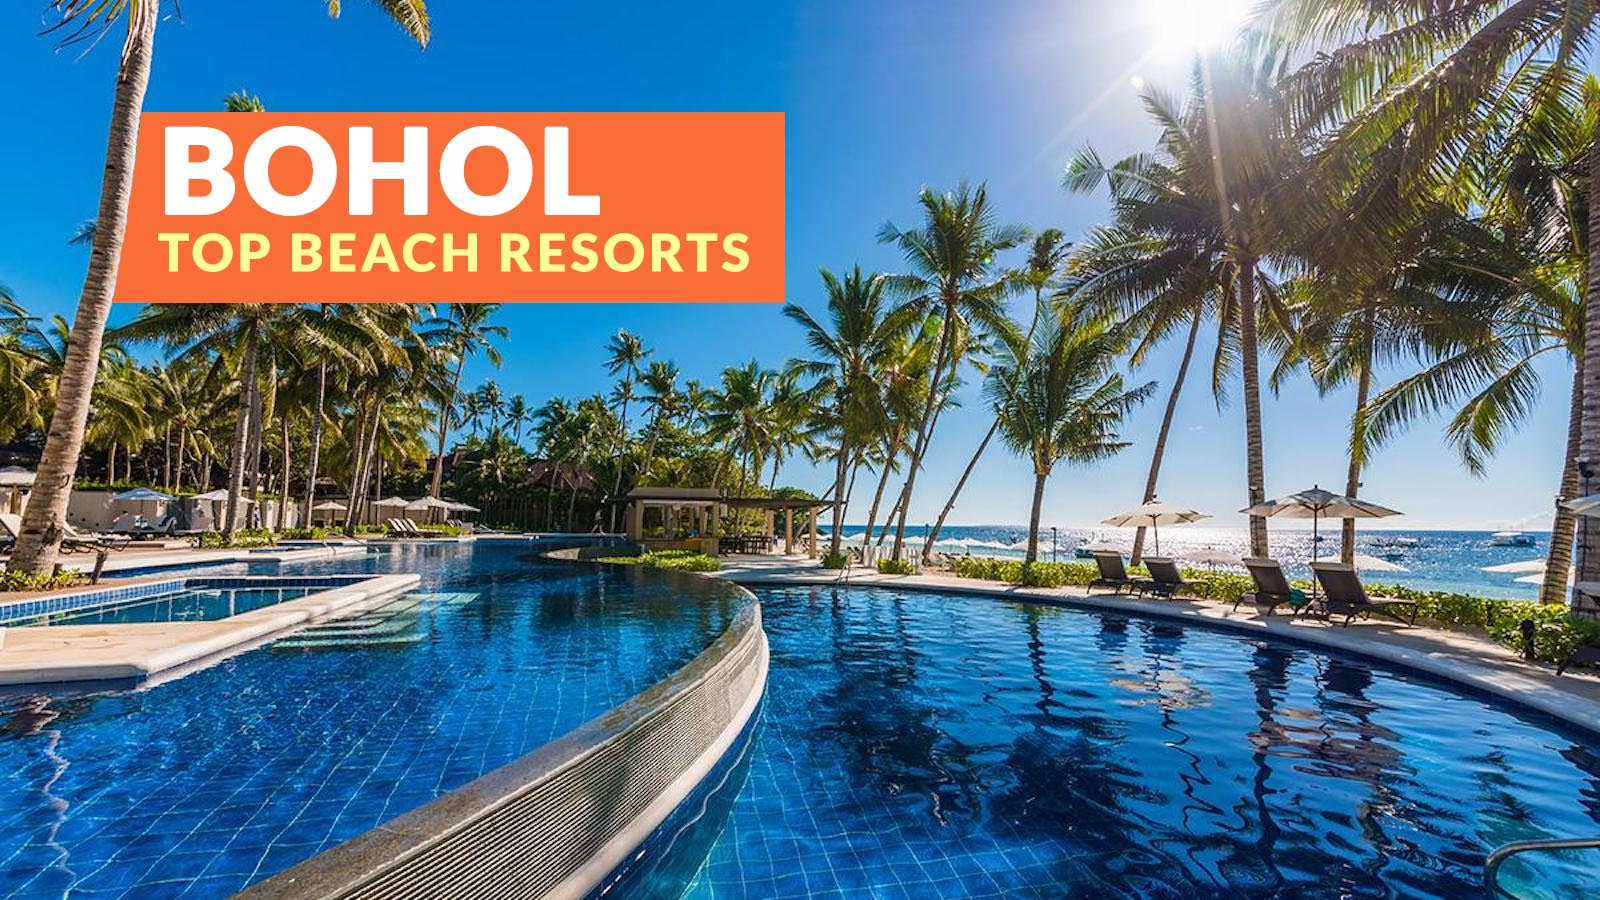 Top 5 beach resorts in bohol 2017 philippine beach guide for Top 5 all inclusive resorts